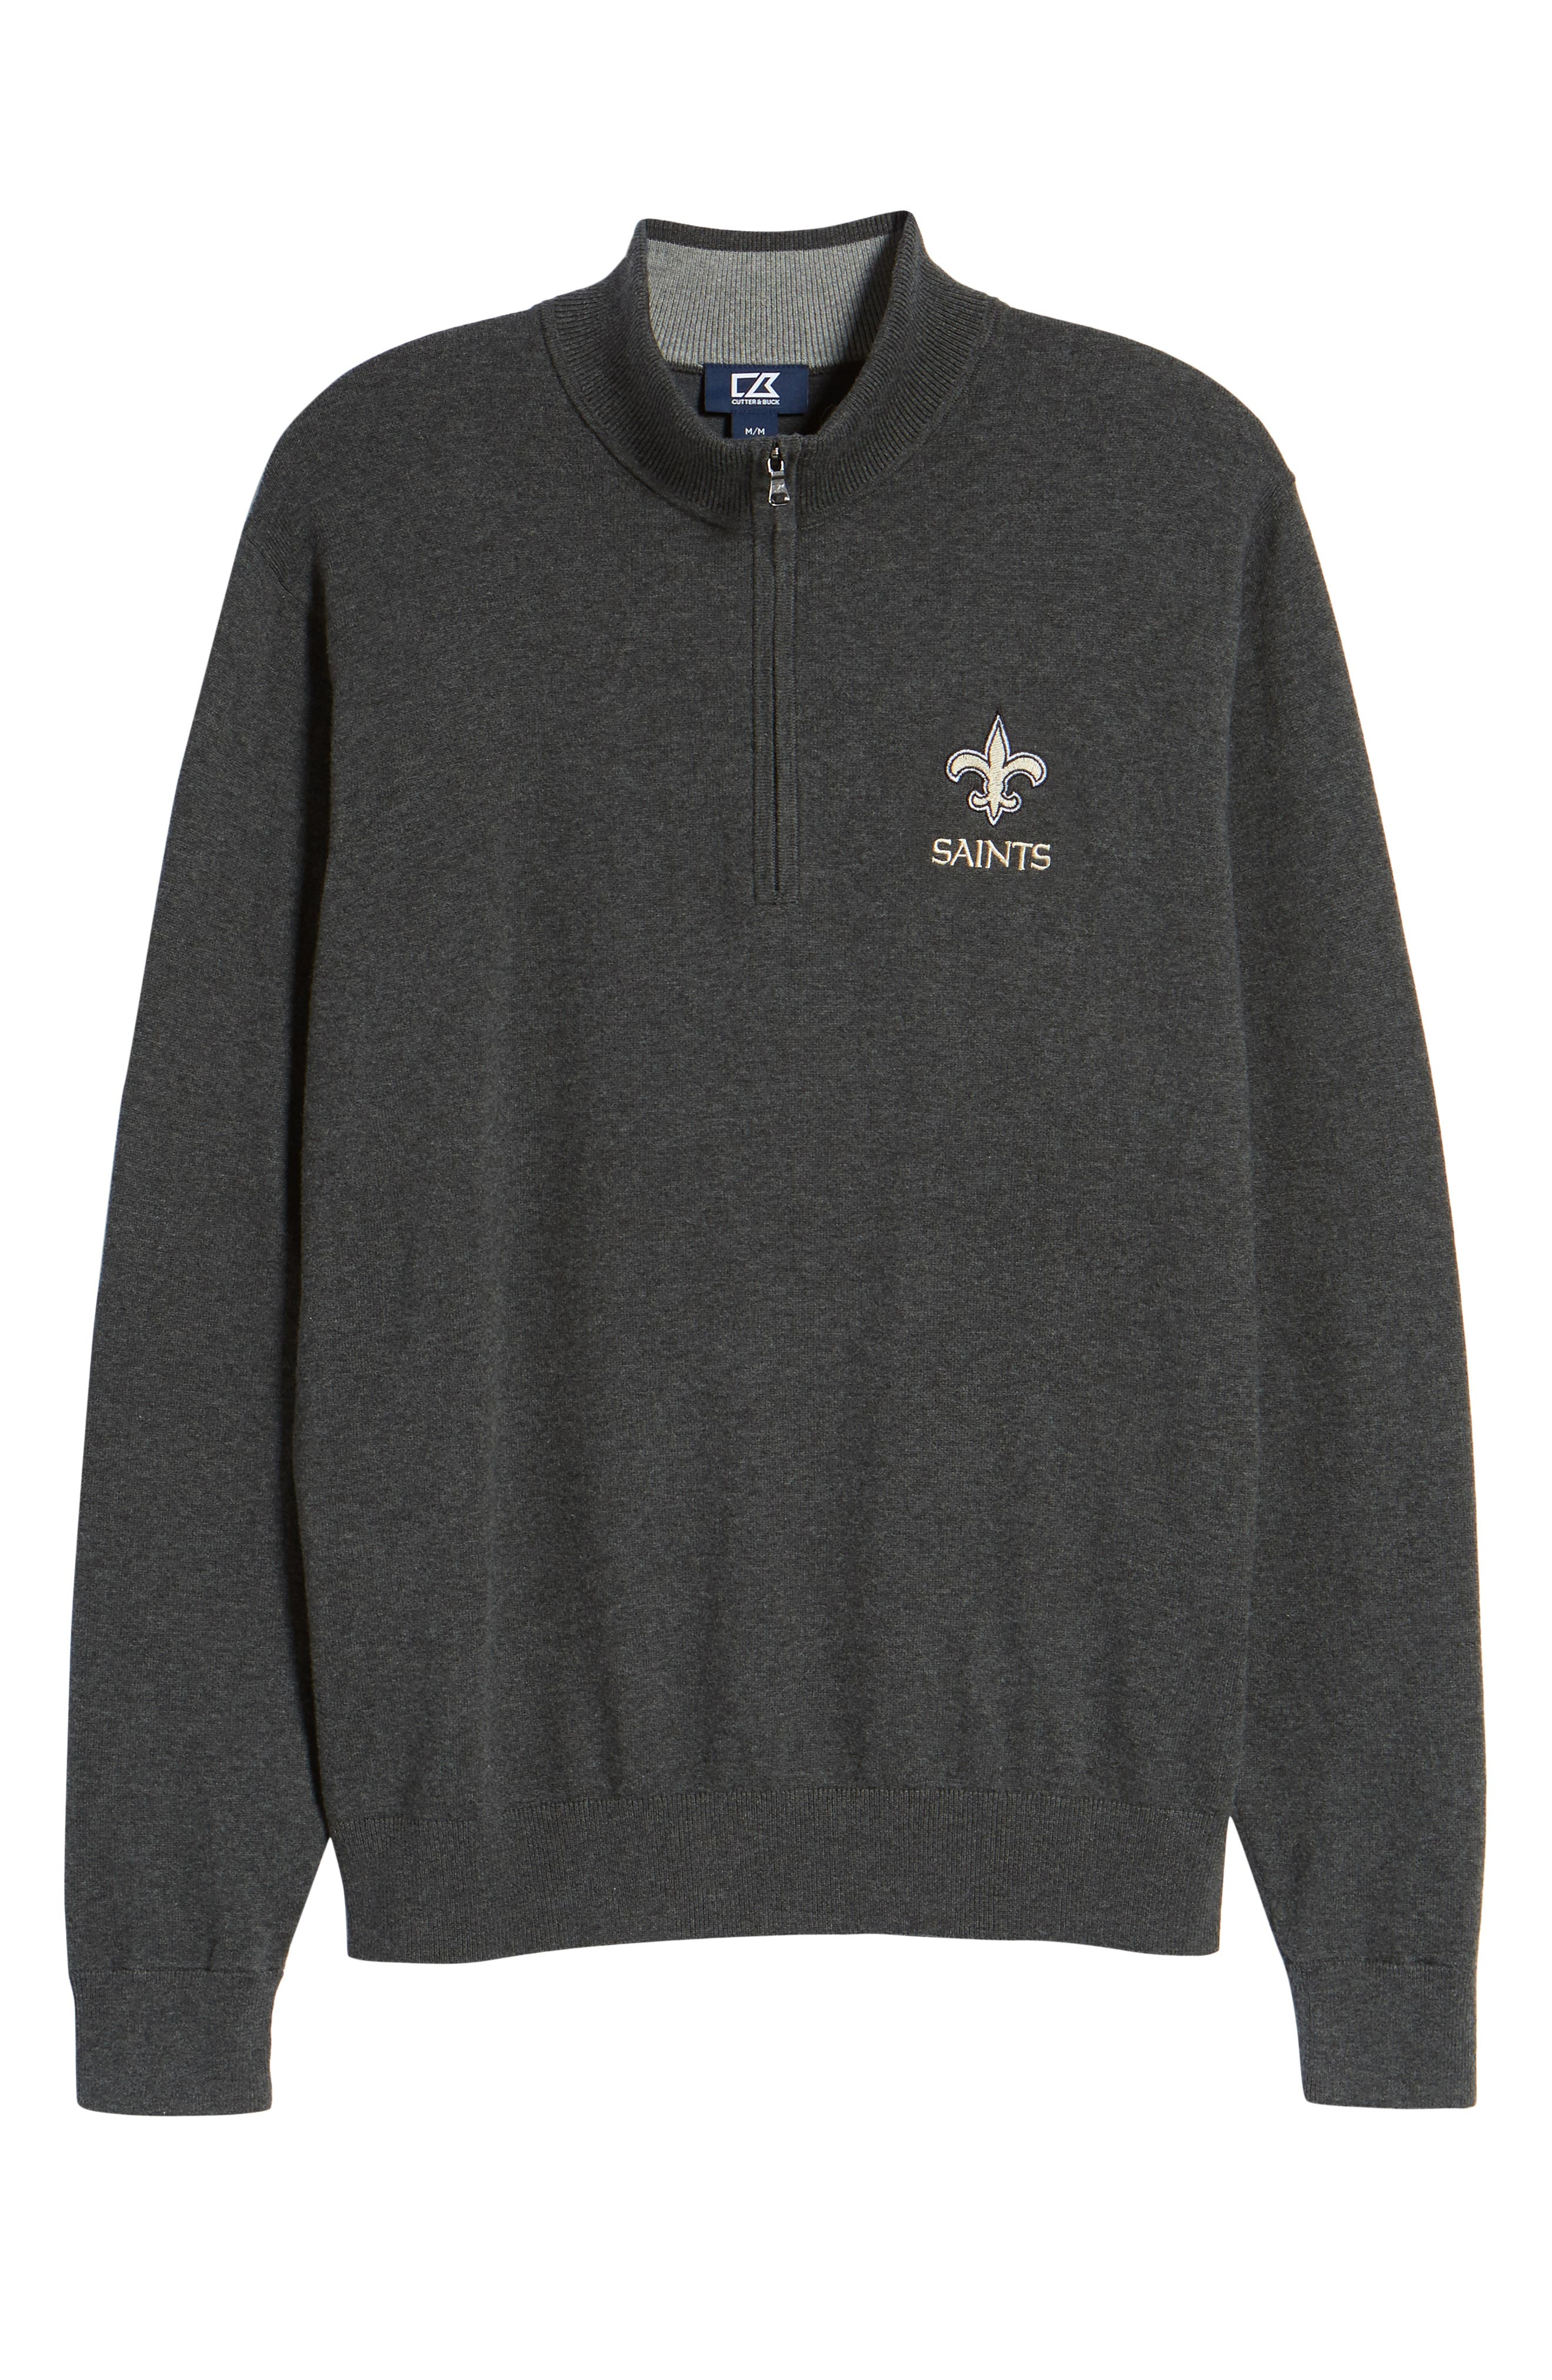 New Orleans Saints - Lakemont Regular Fit Quarter Zip Sweater,                             Alternate thumbnail 6, color,                             CHARCOAL HEATHER